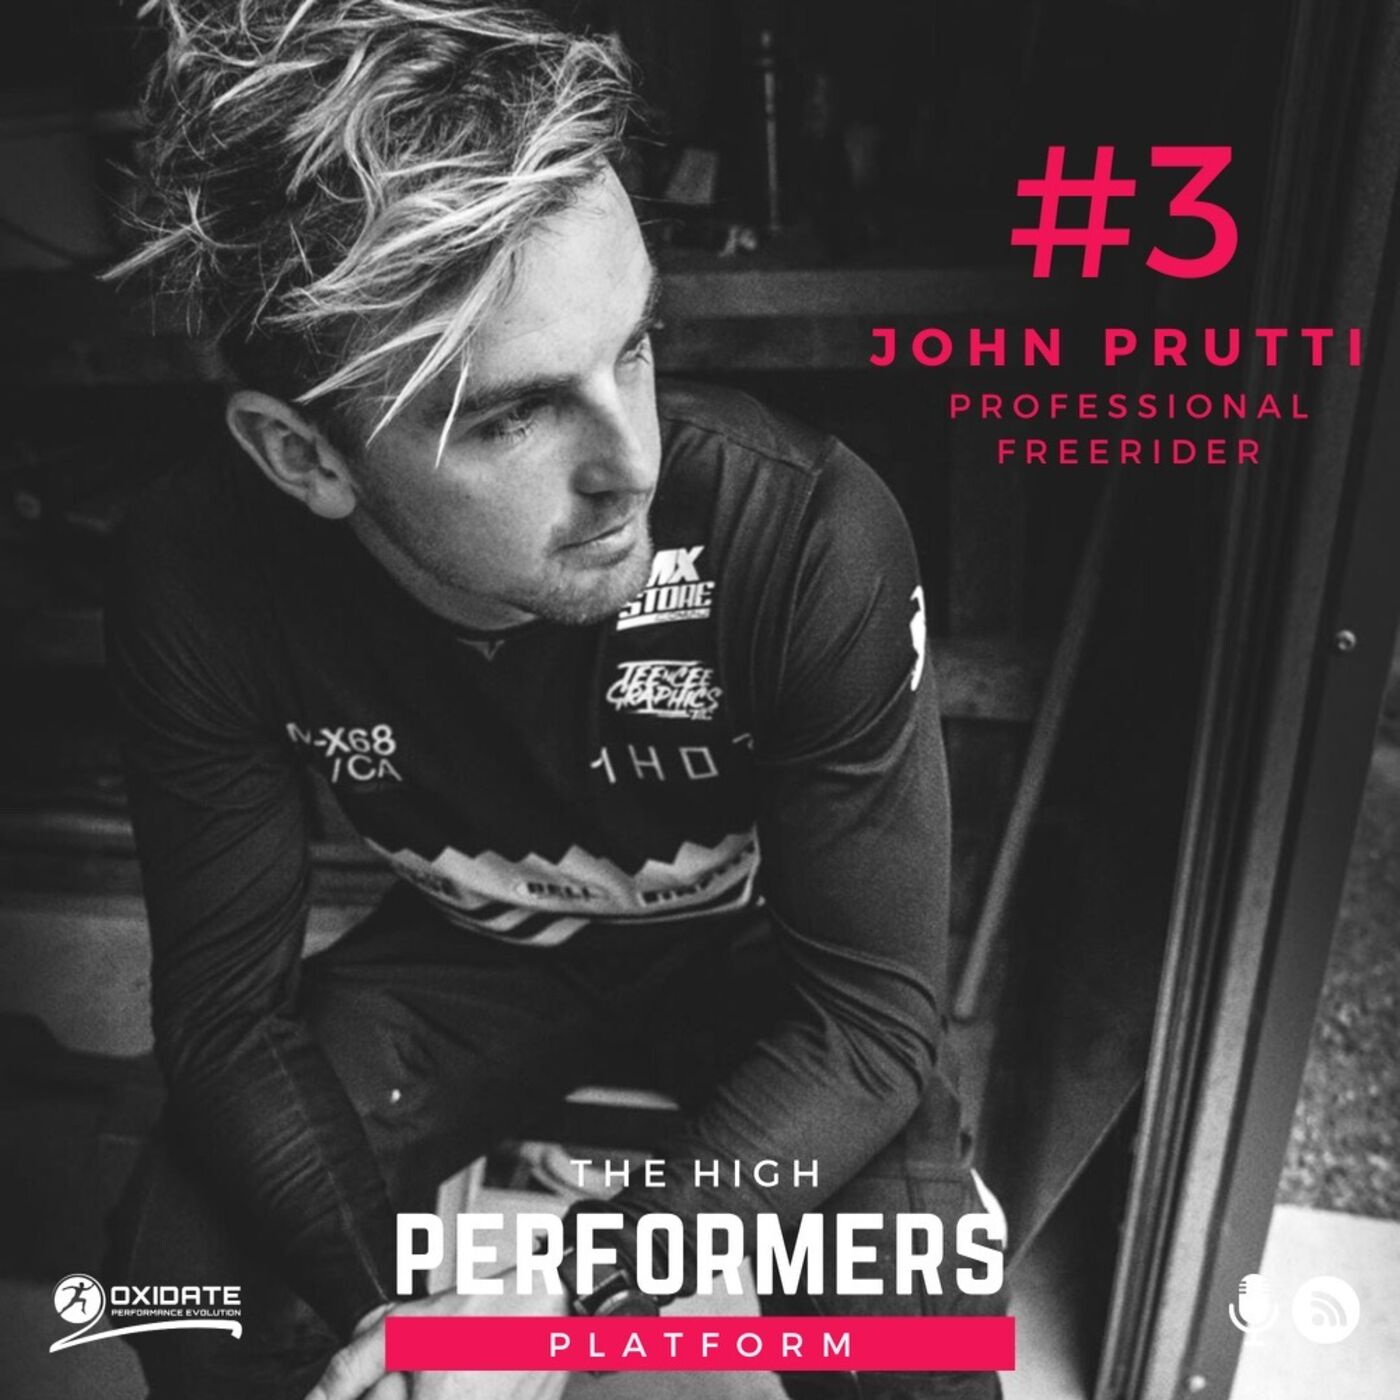 #3: John Prutti - Professional Motor Cross Racer & Free Rider. What it takes to push limits and boundaries to make it to the top, and how trying a worlds first trick almost cost him his career